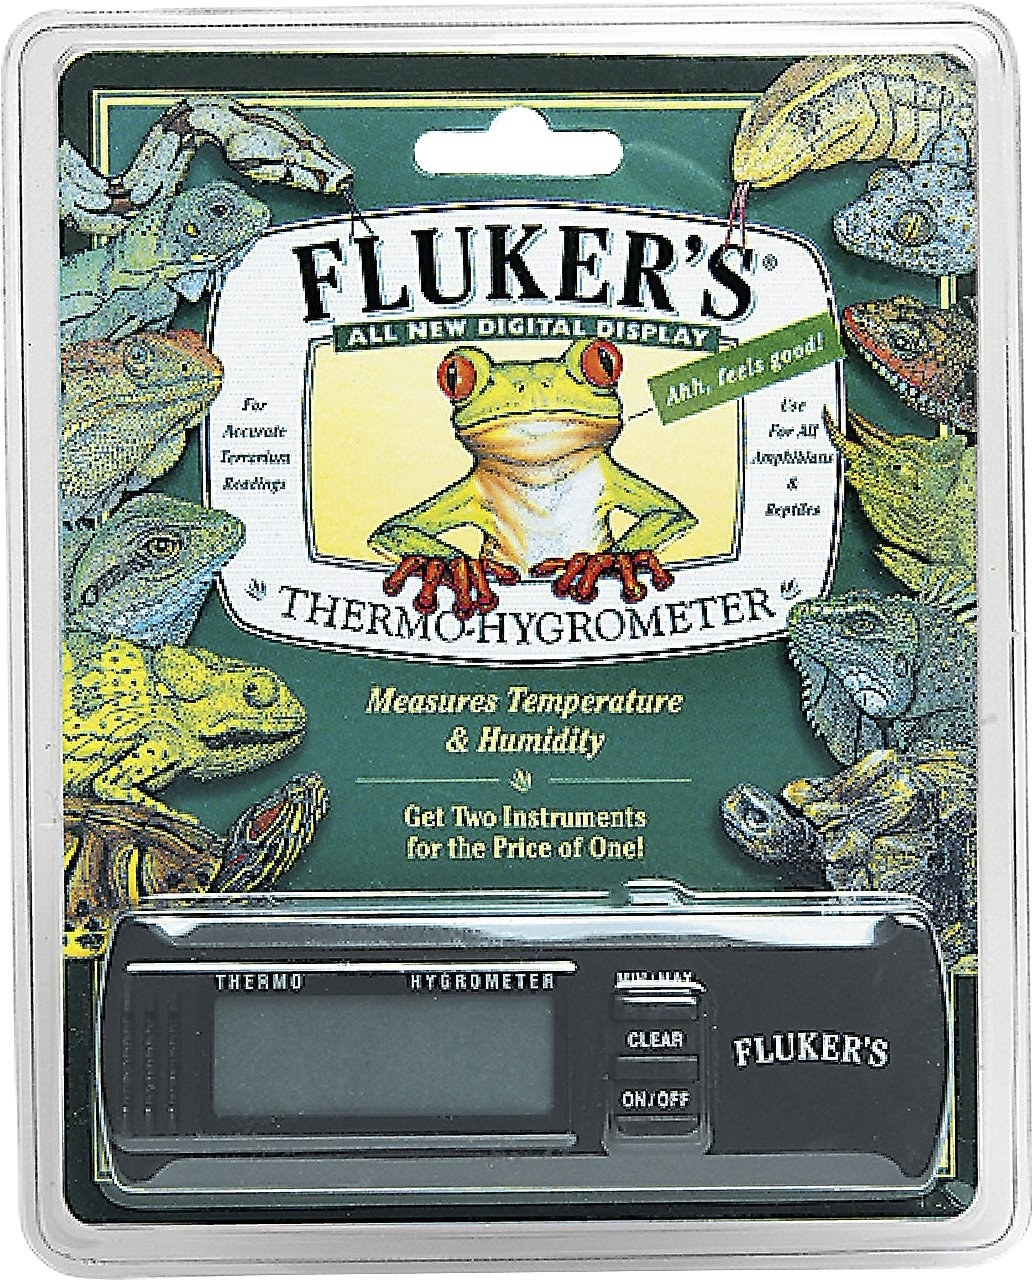 Close-up of the thermometer with frogs and other reptiles on the packaging